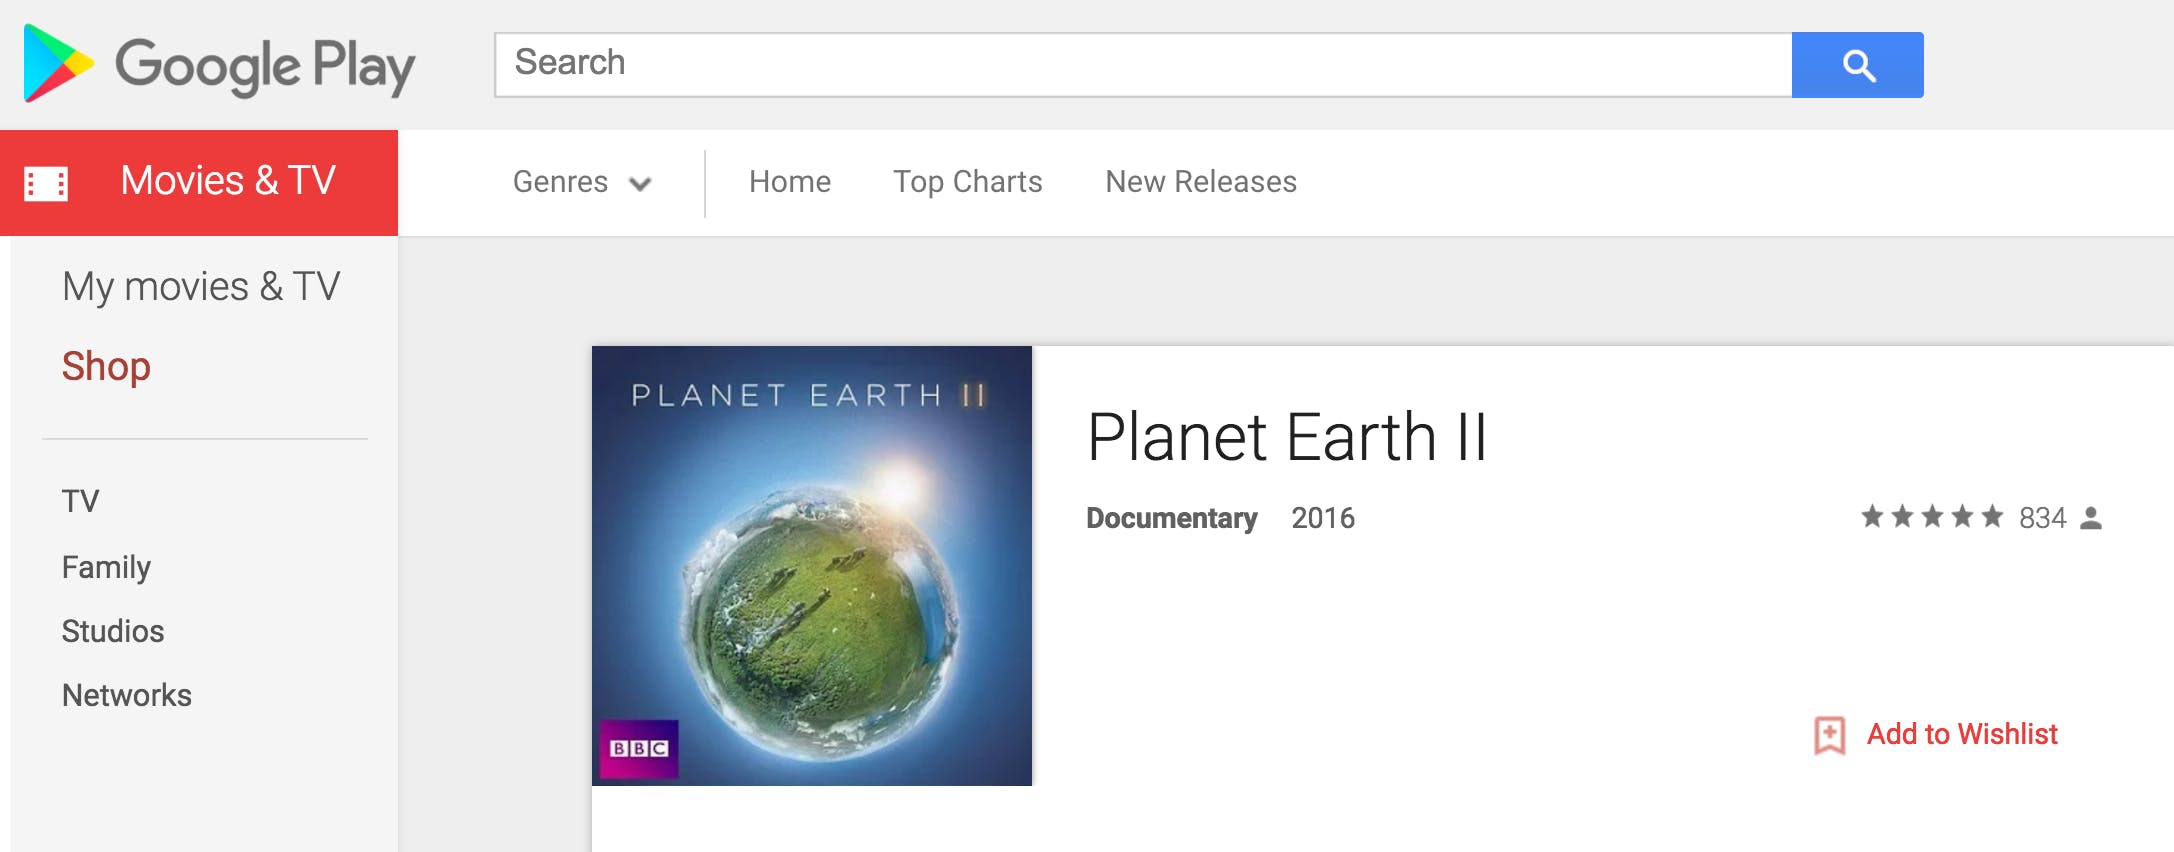 how to watch planet earth 2 : Google Play